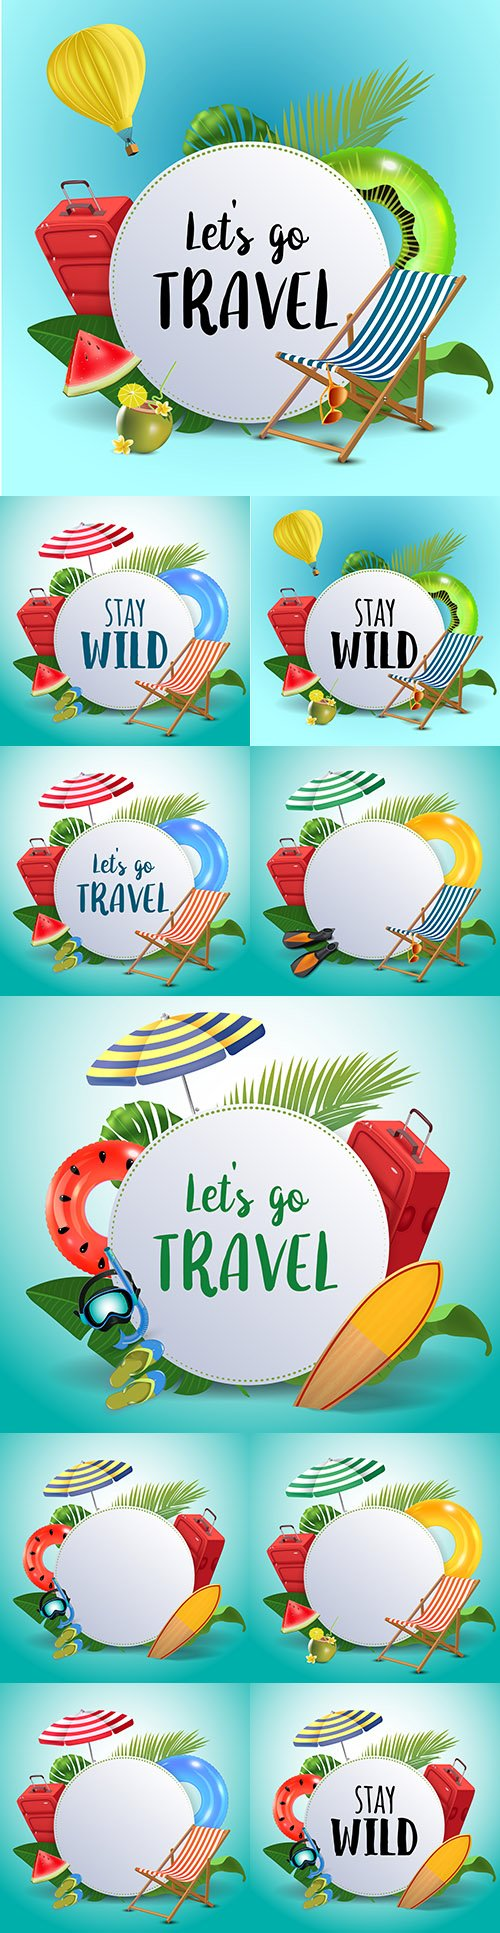 Nature summer travel landscape with holiday accessories